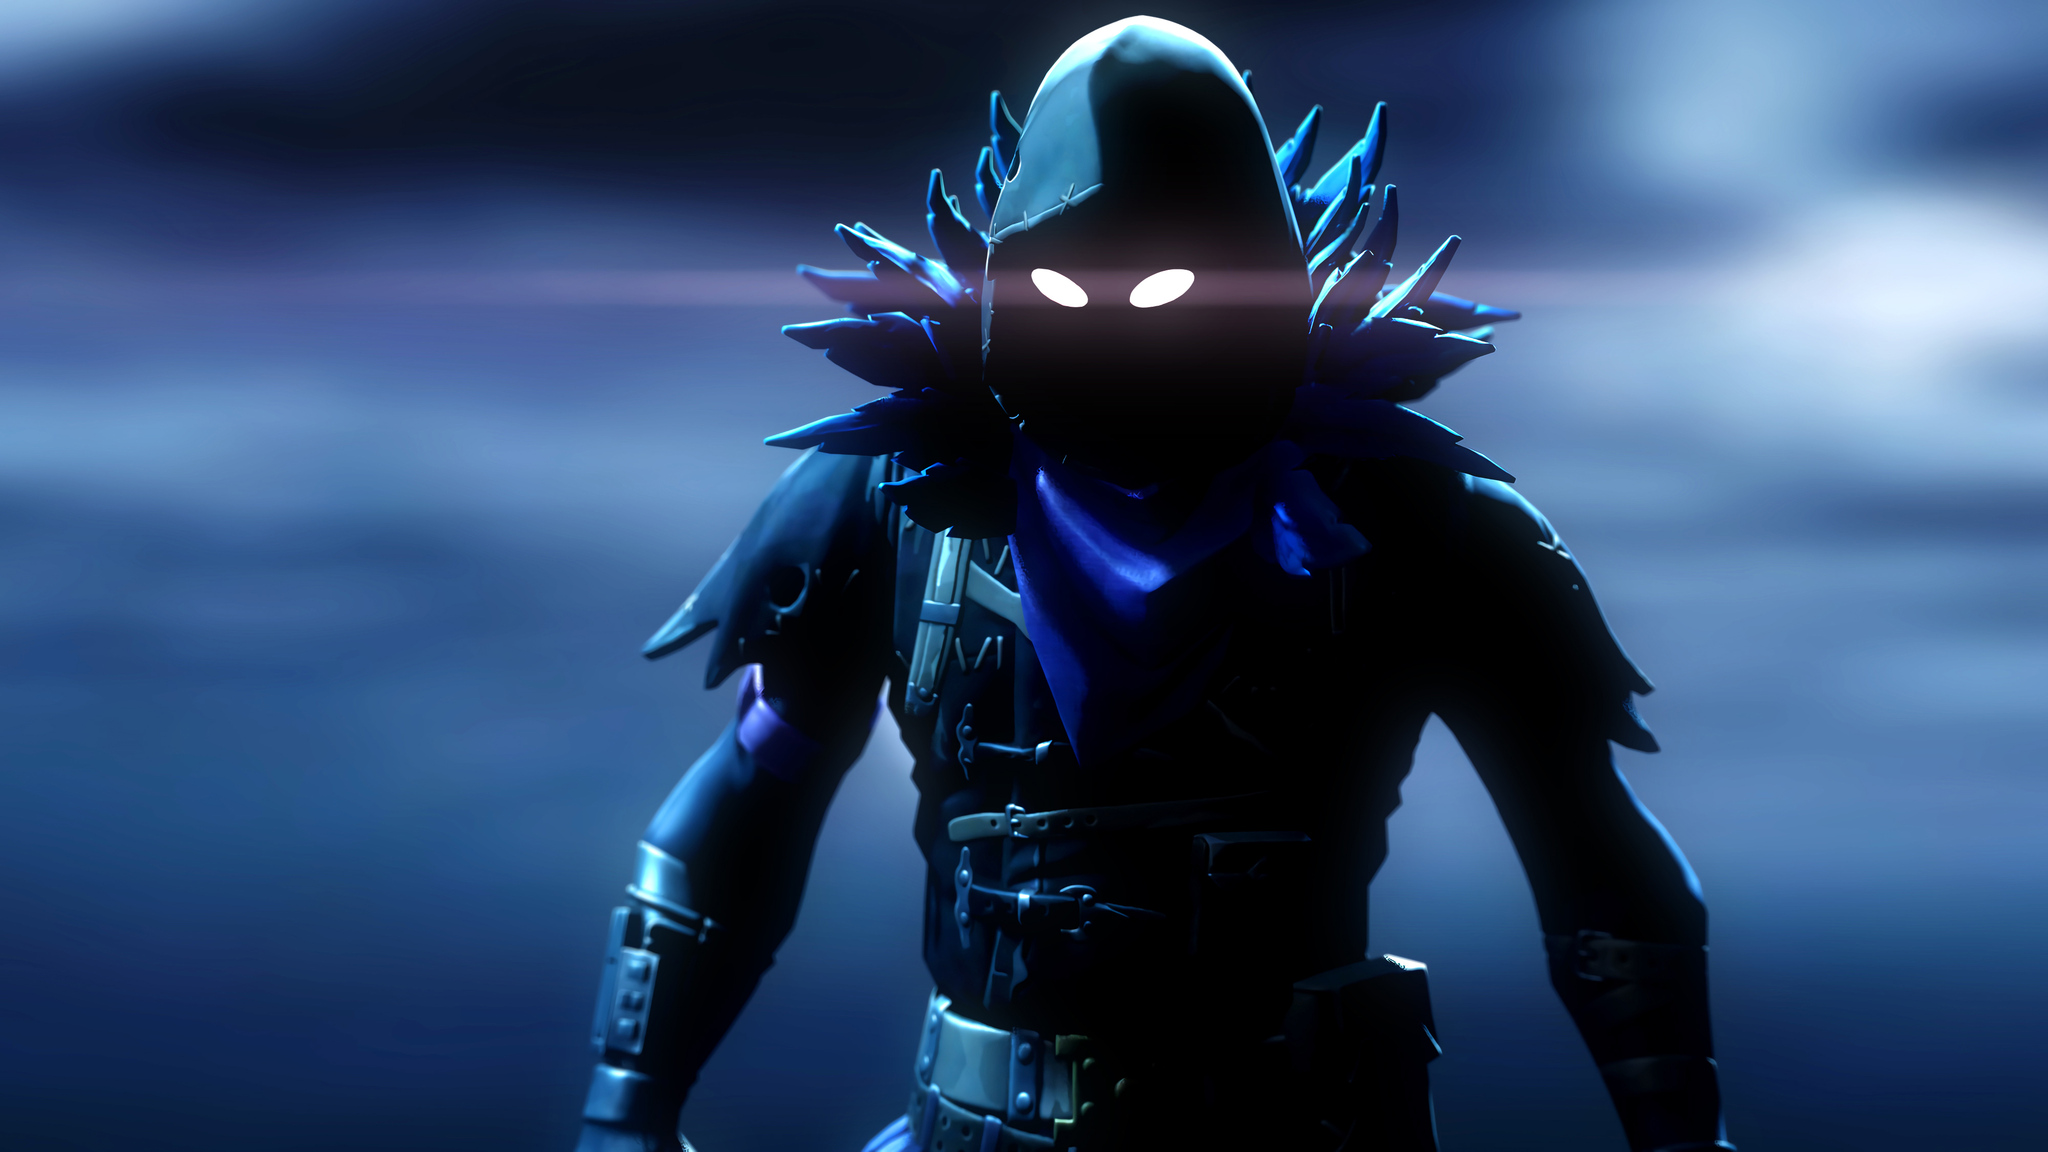 Fortnite Cobalt Skin Wallpaper Fortnite Buck Hack